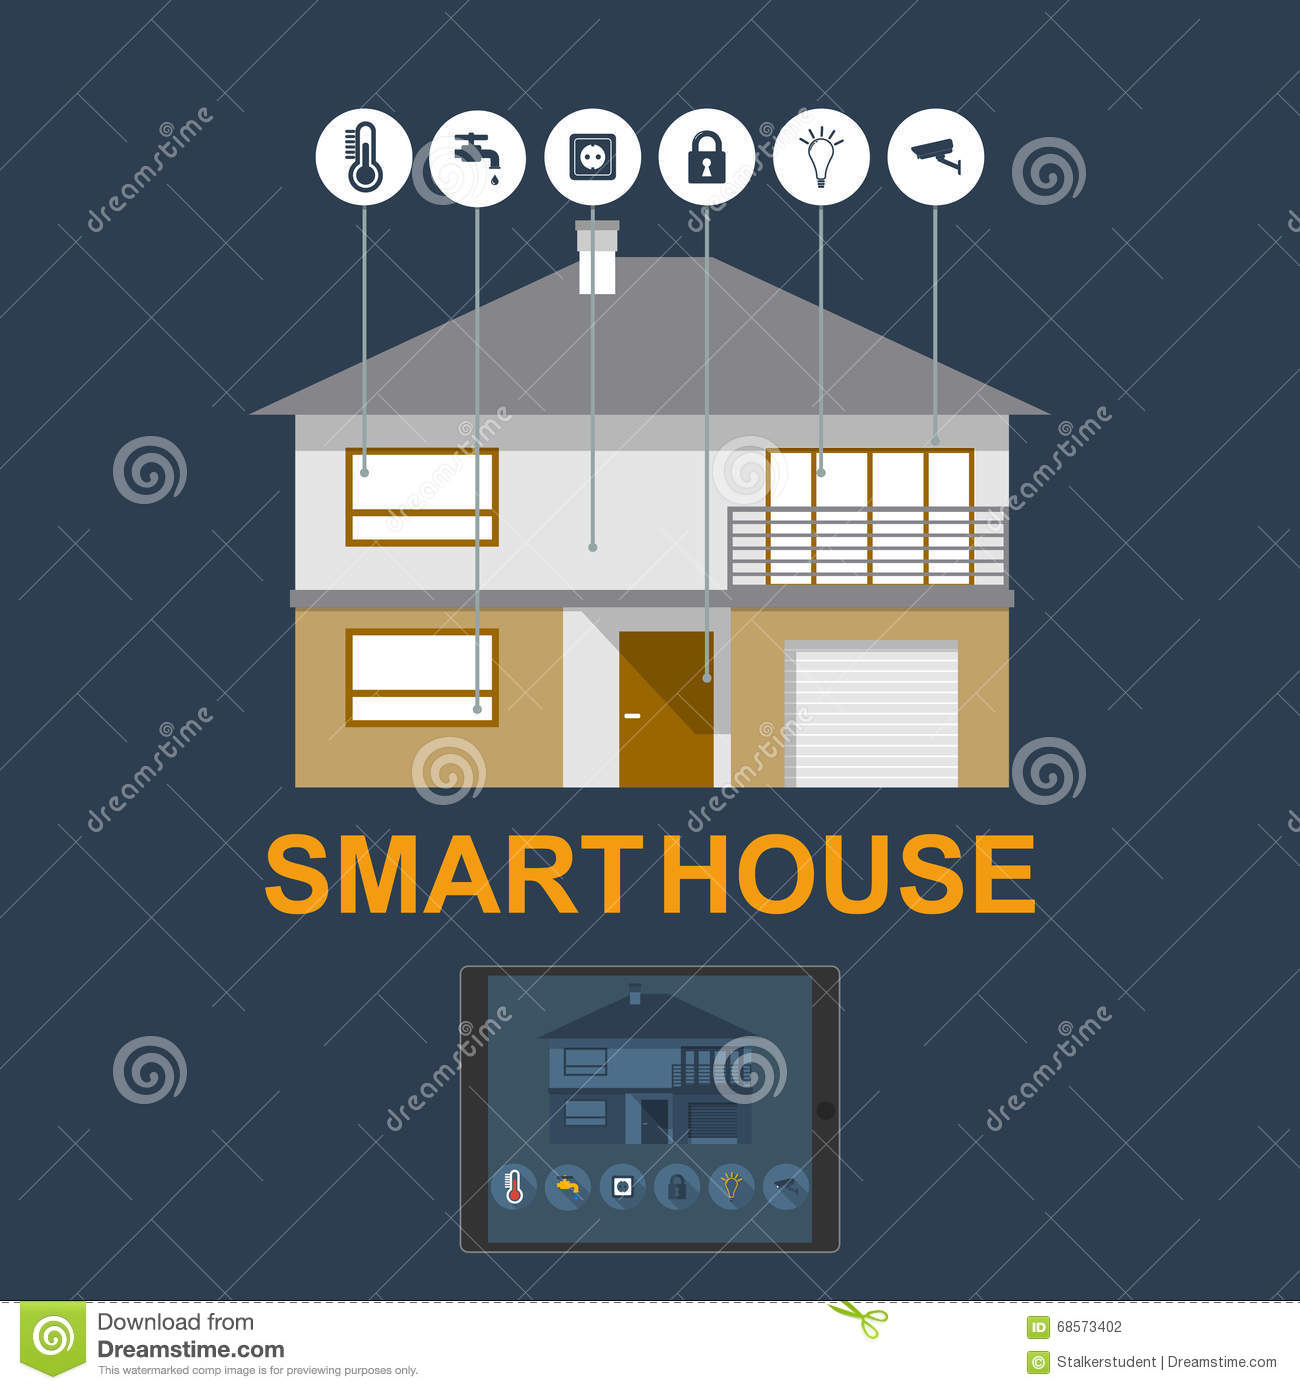 Smart Home. Flat Design Style Illustration Concept Of Smart House  Technology System With Centralized Control